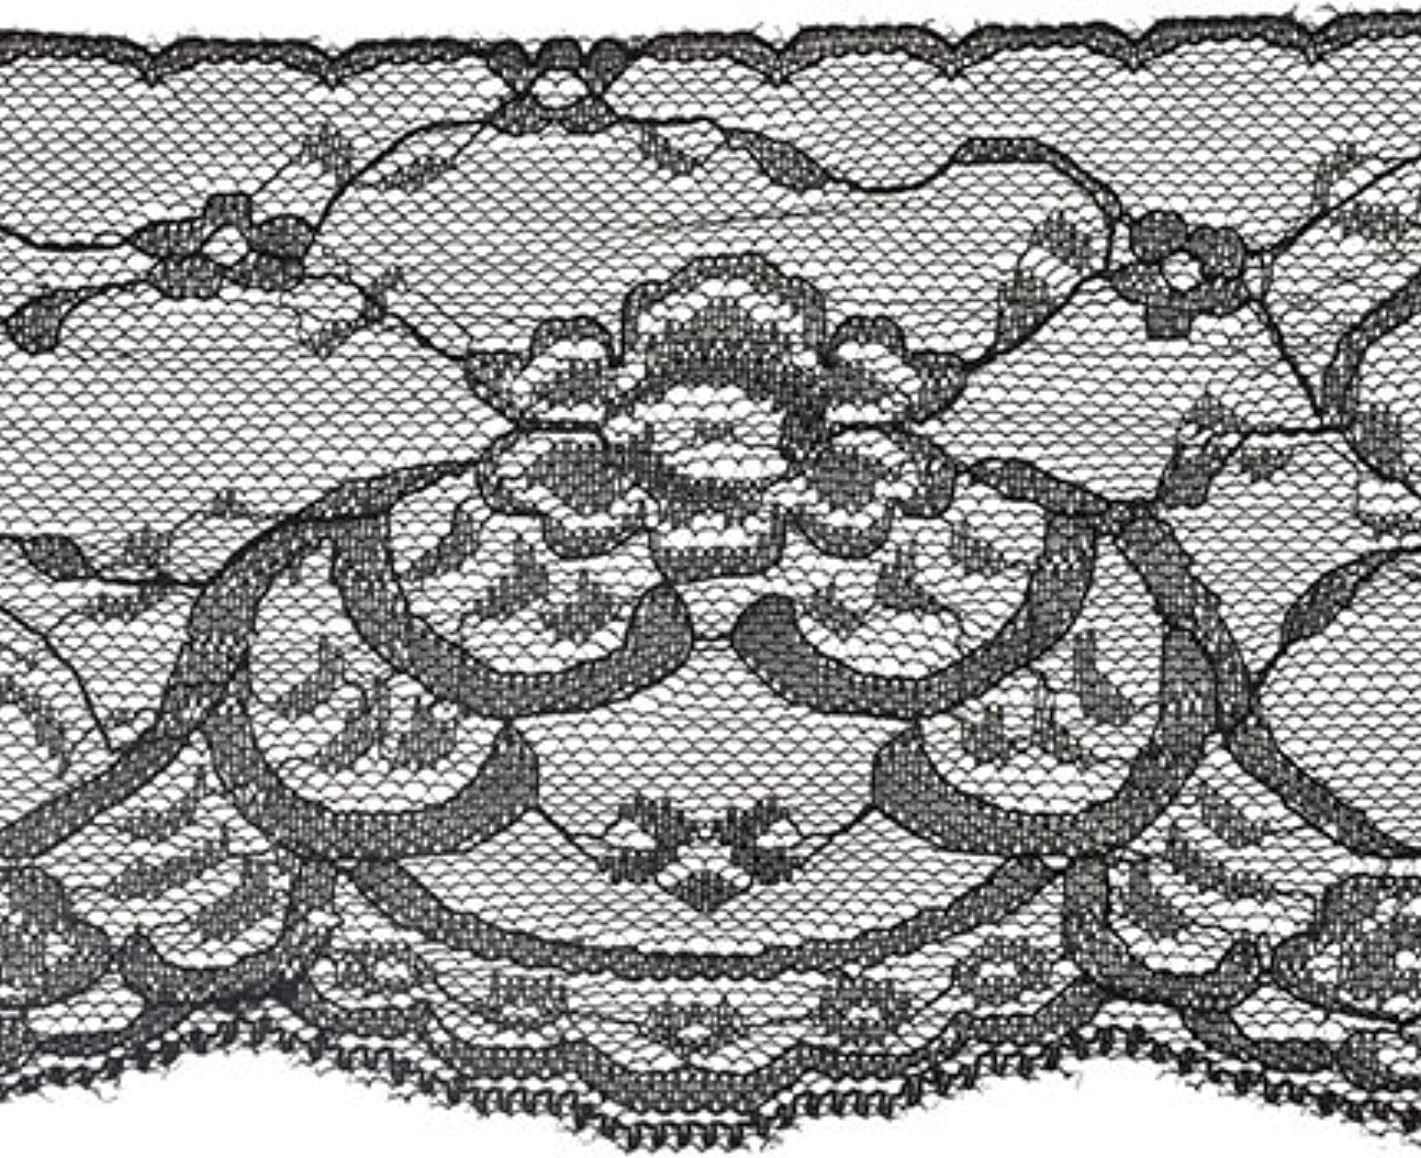 Decorative Trimmings Black Floral Galloon Flat Lace Trim 4